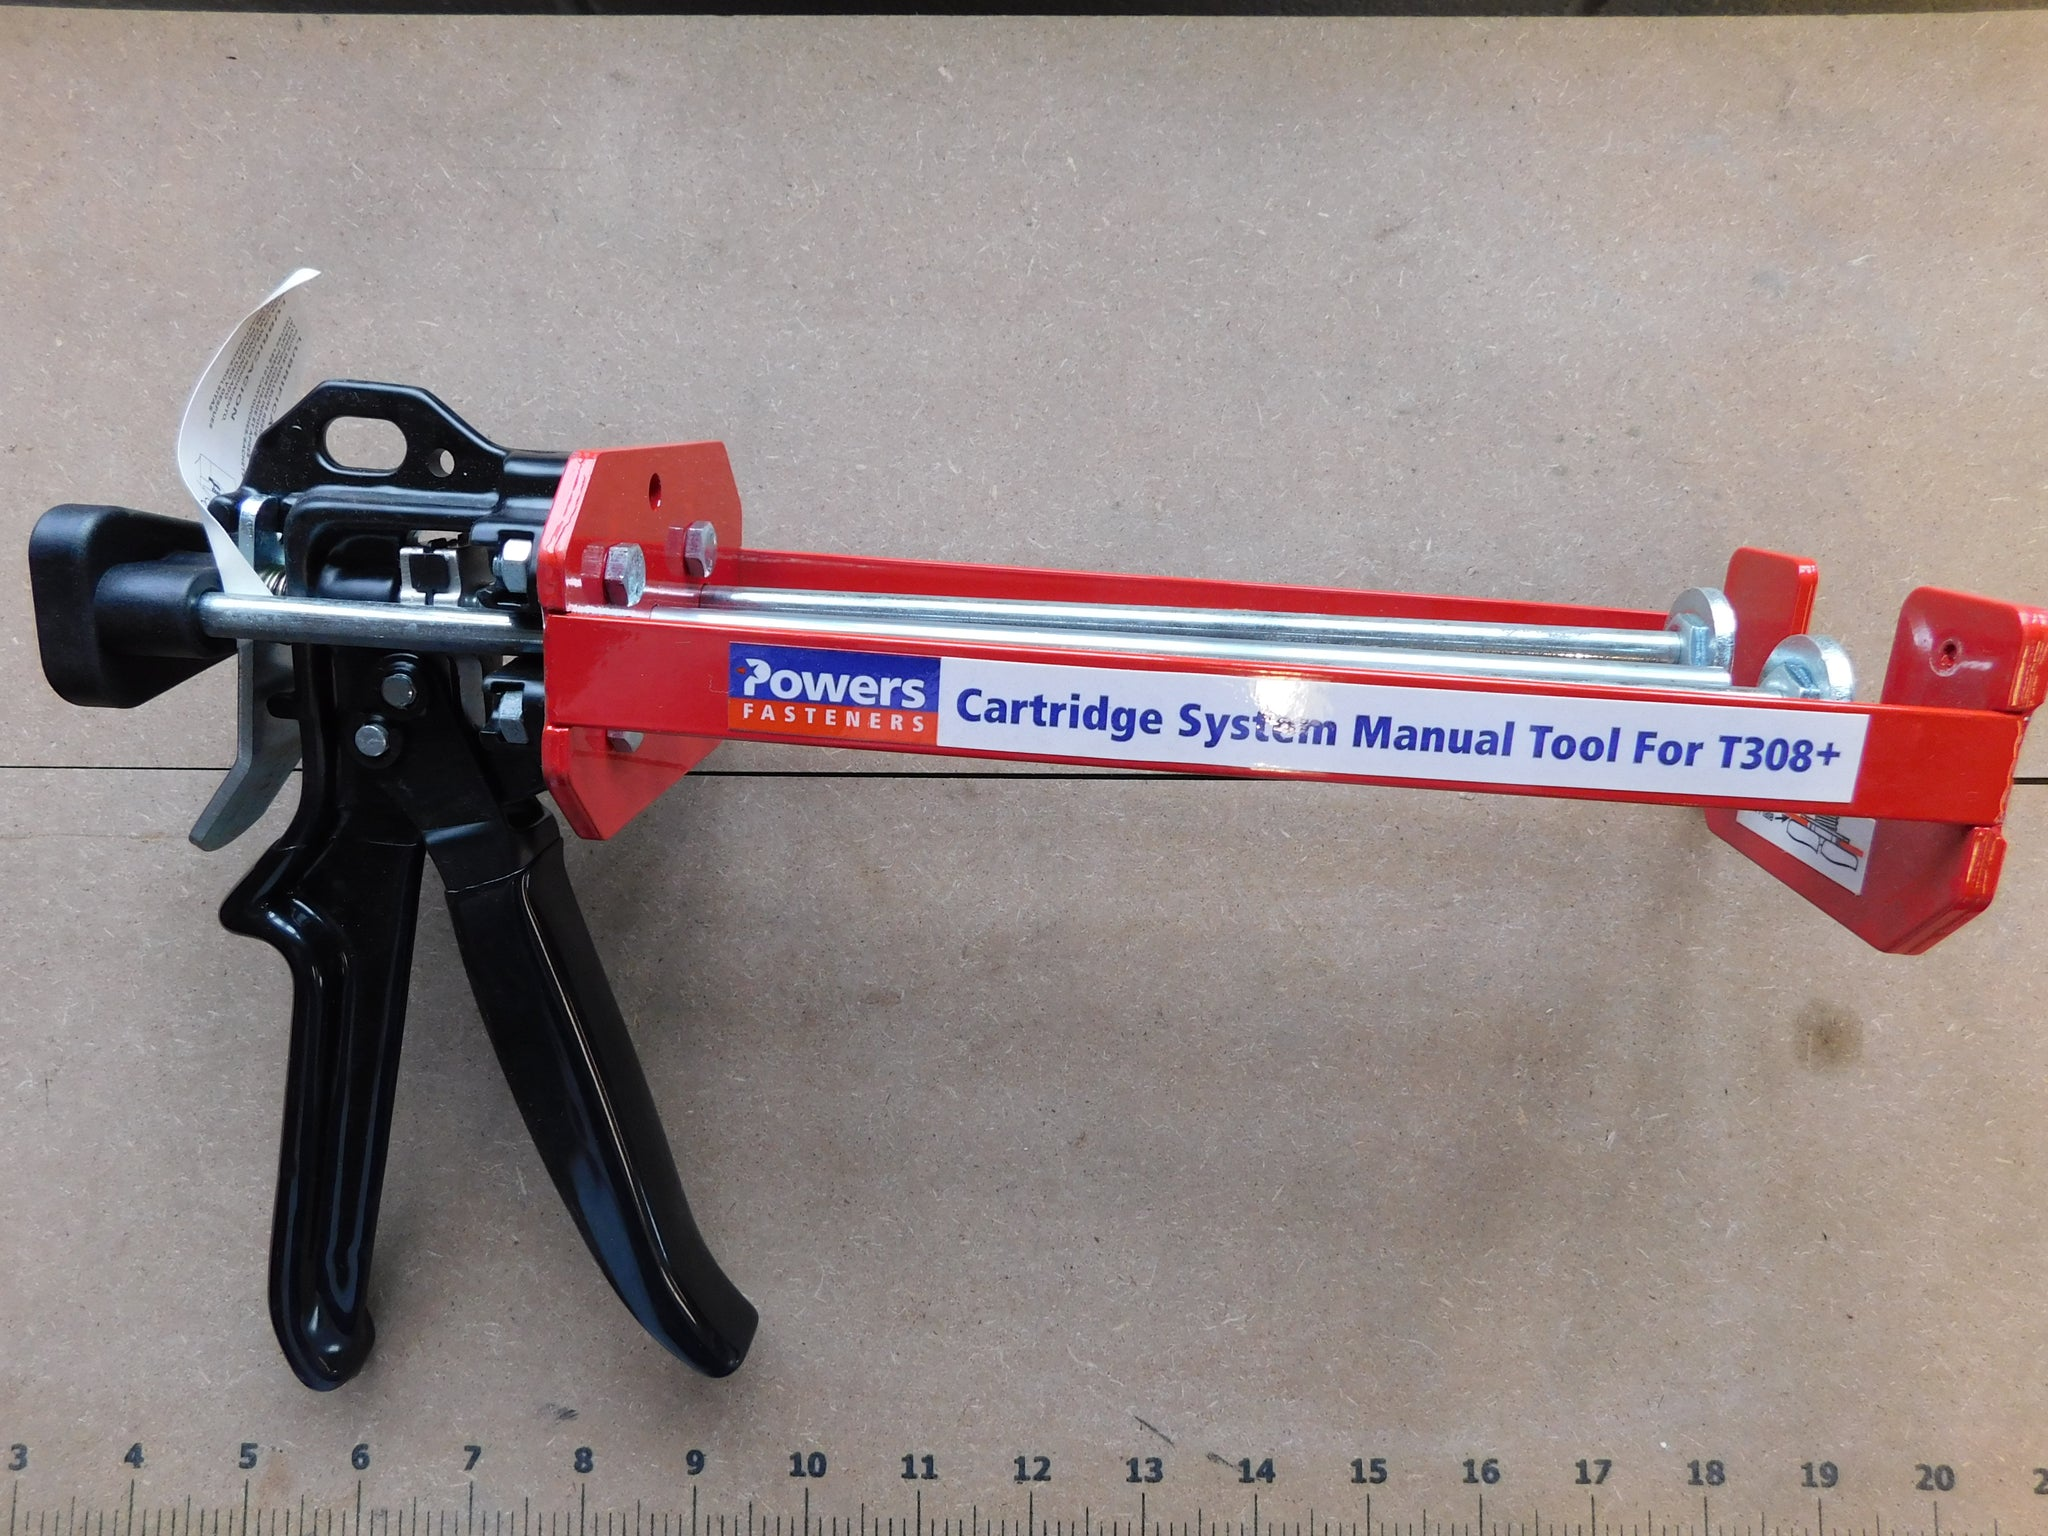 POWERS MANUAL 16 oz. CARTRIDGE EPOXY INJECTION TOOL